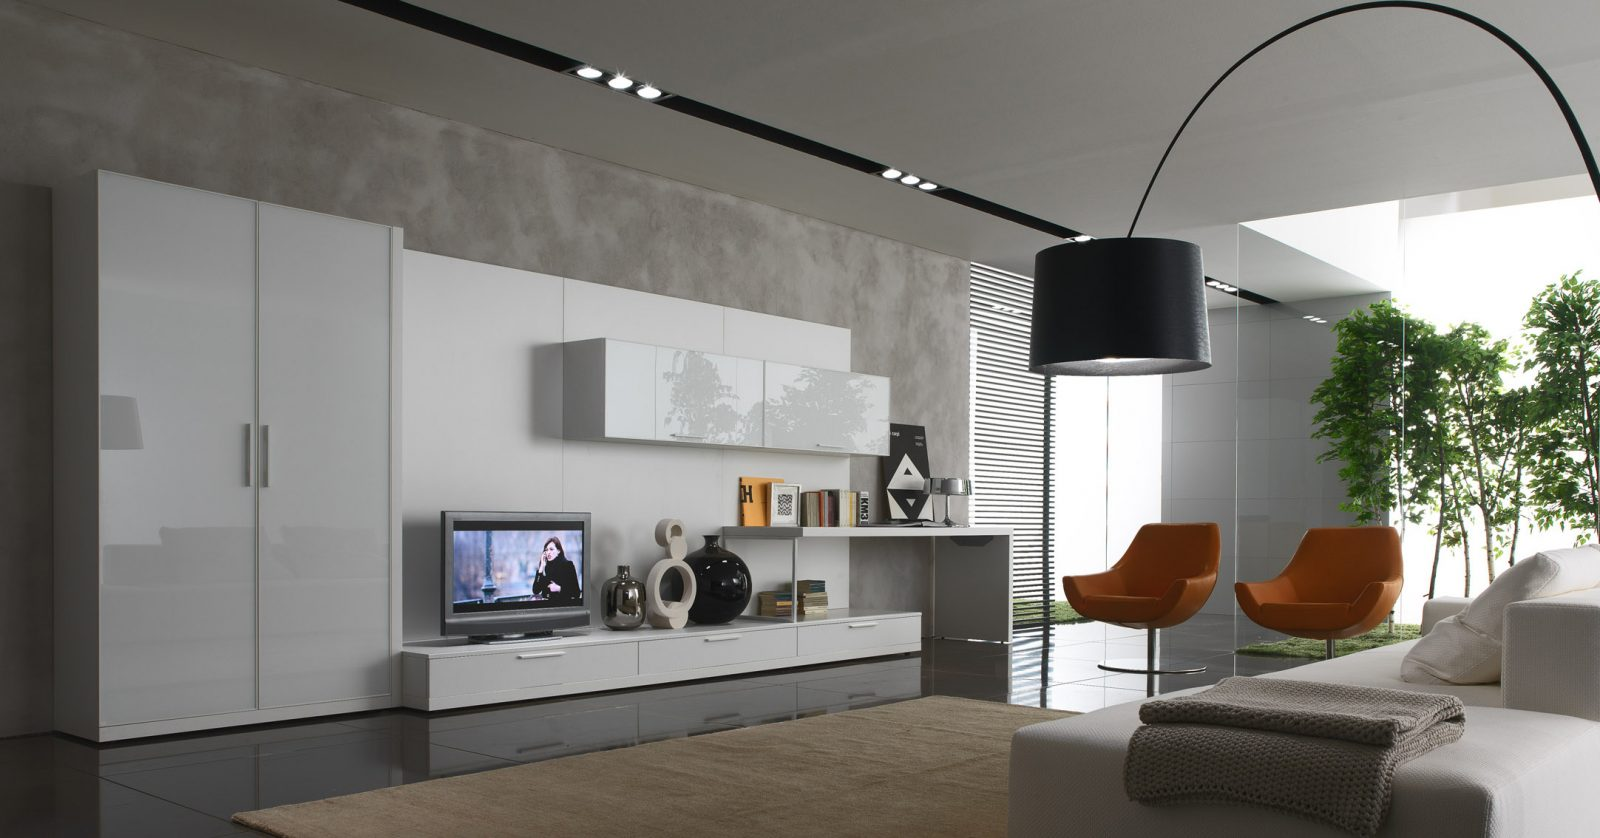 Baños Minimalistas Decoracion:Modern Living Room Interior Design Ideas